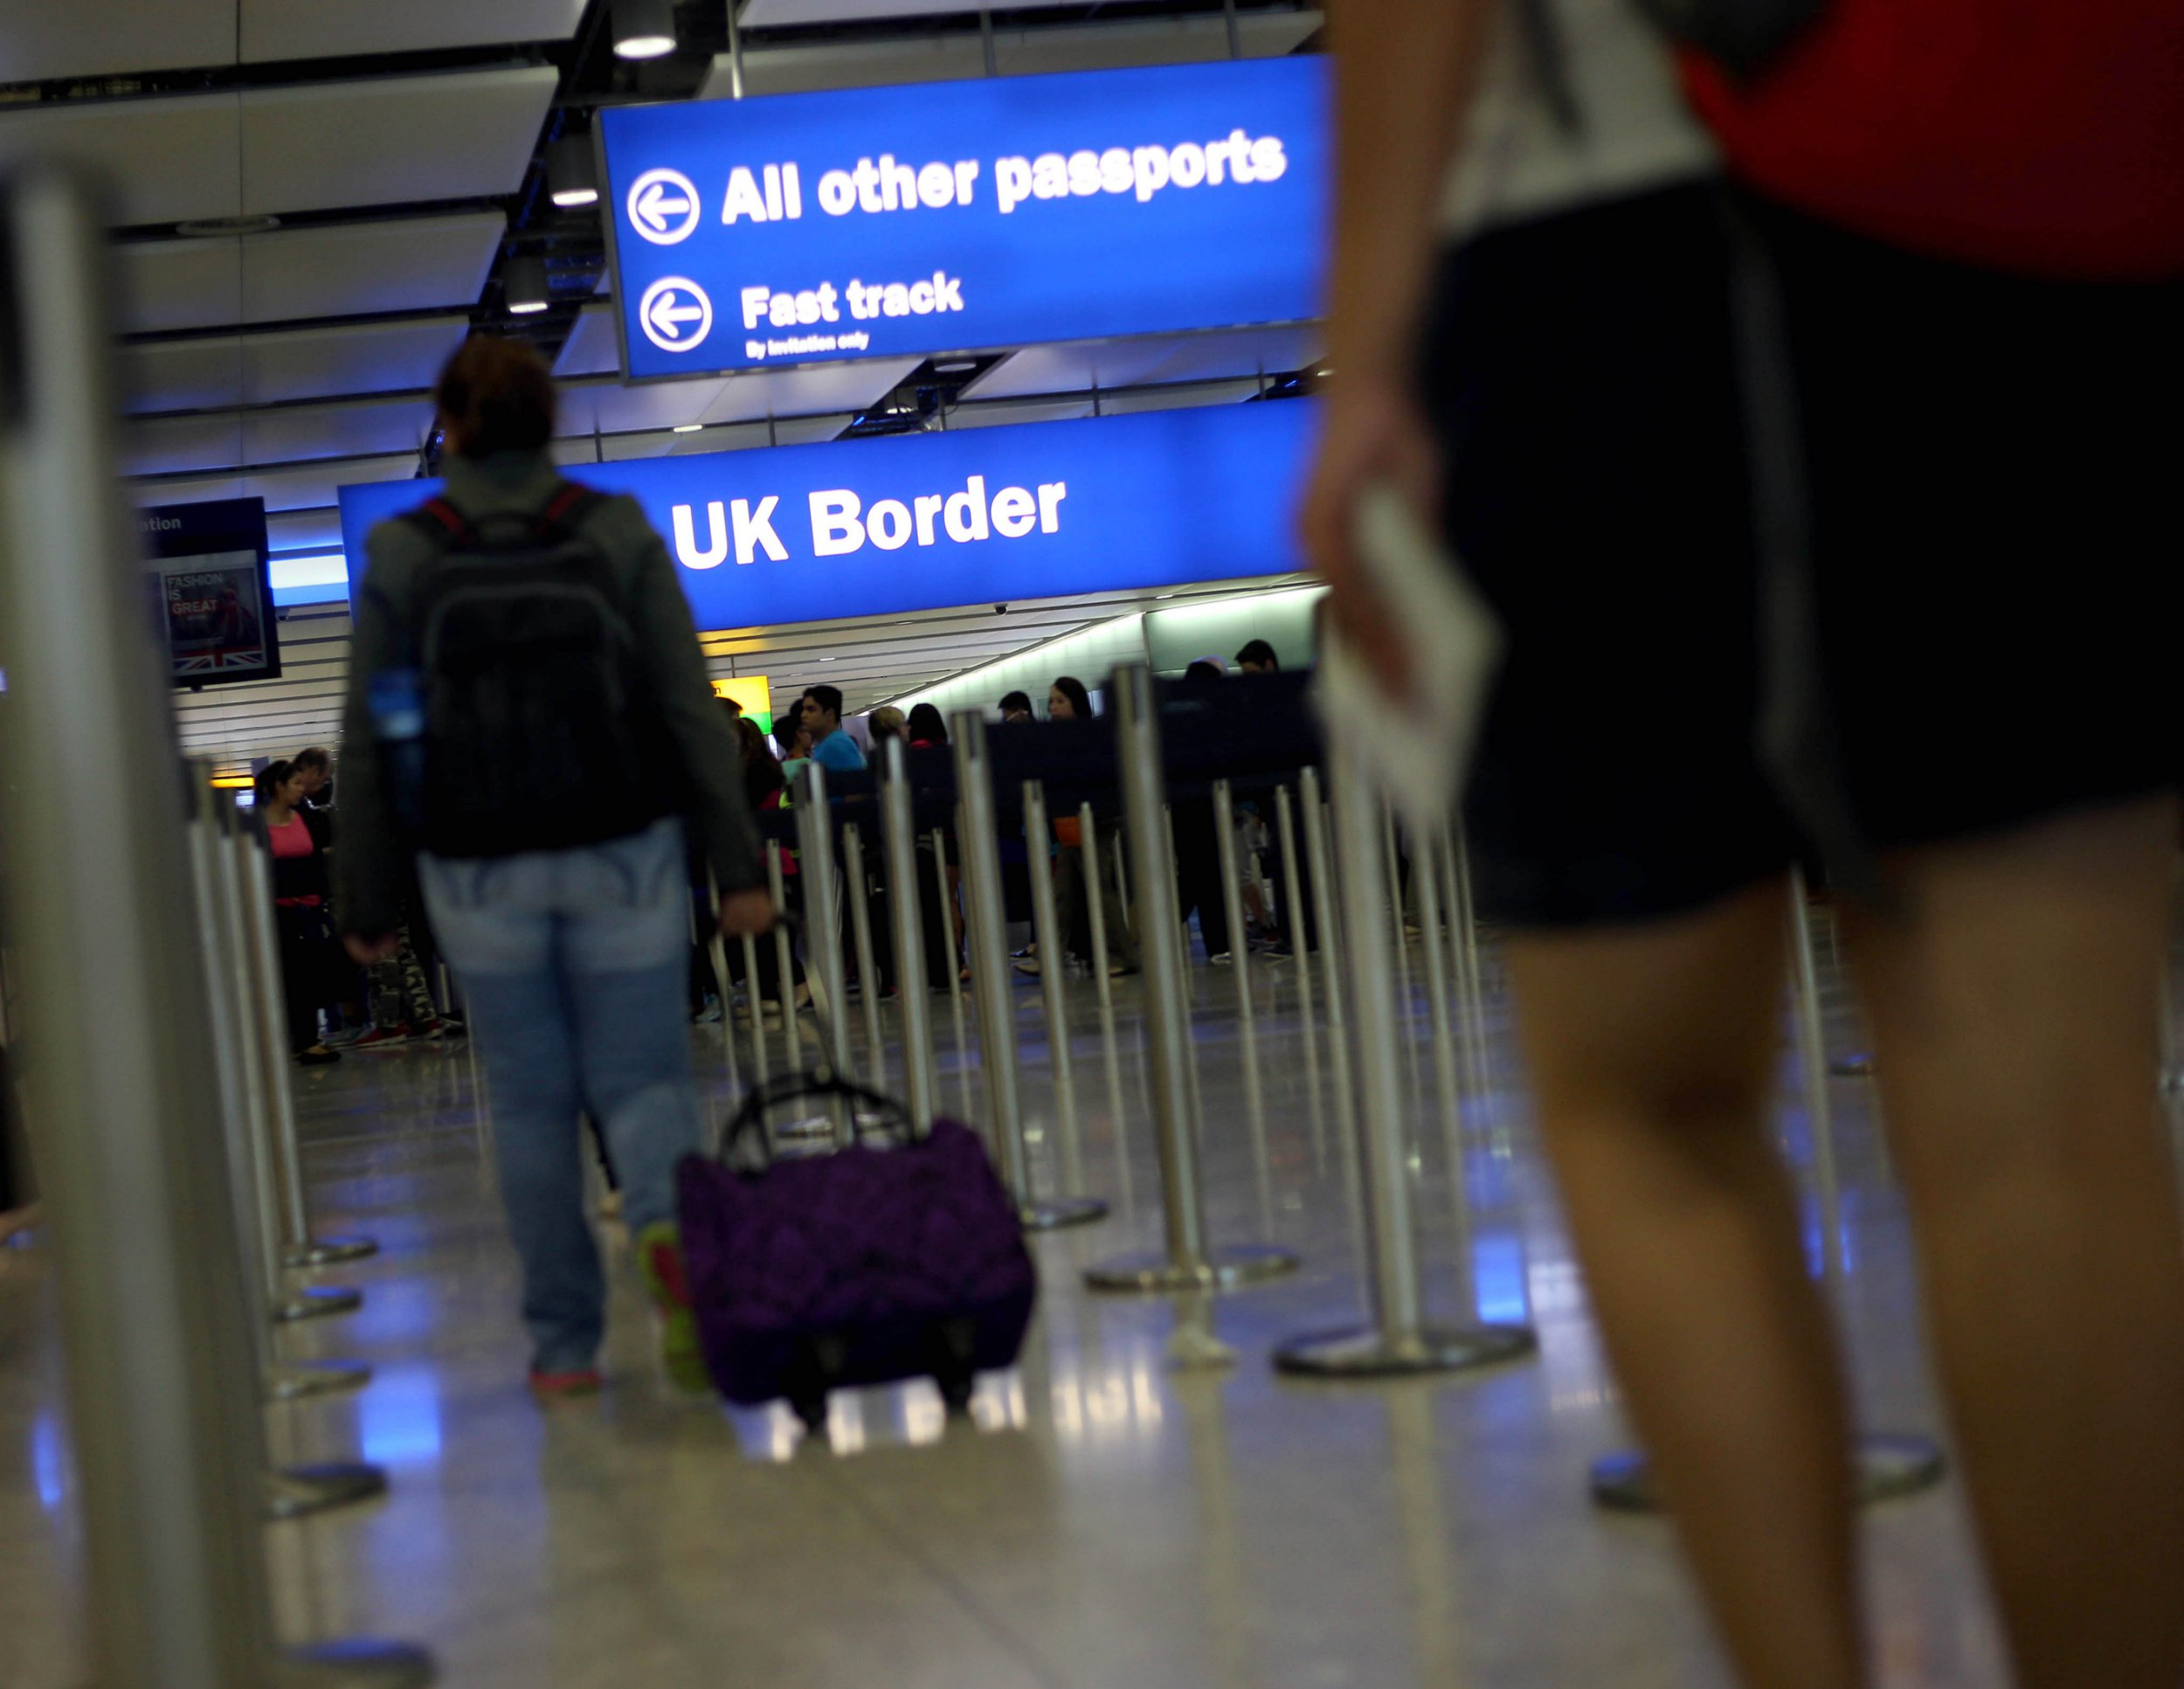 Illegal immigration could increase after Brexit, say experts